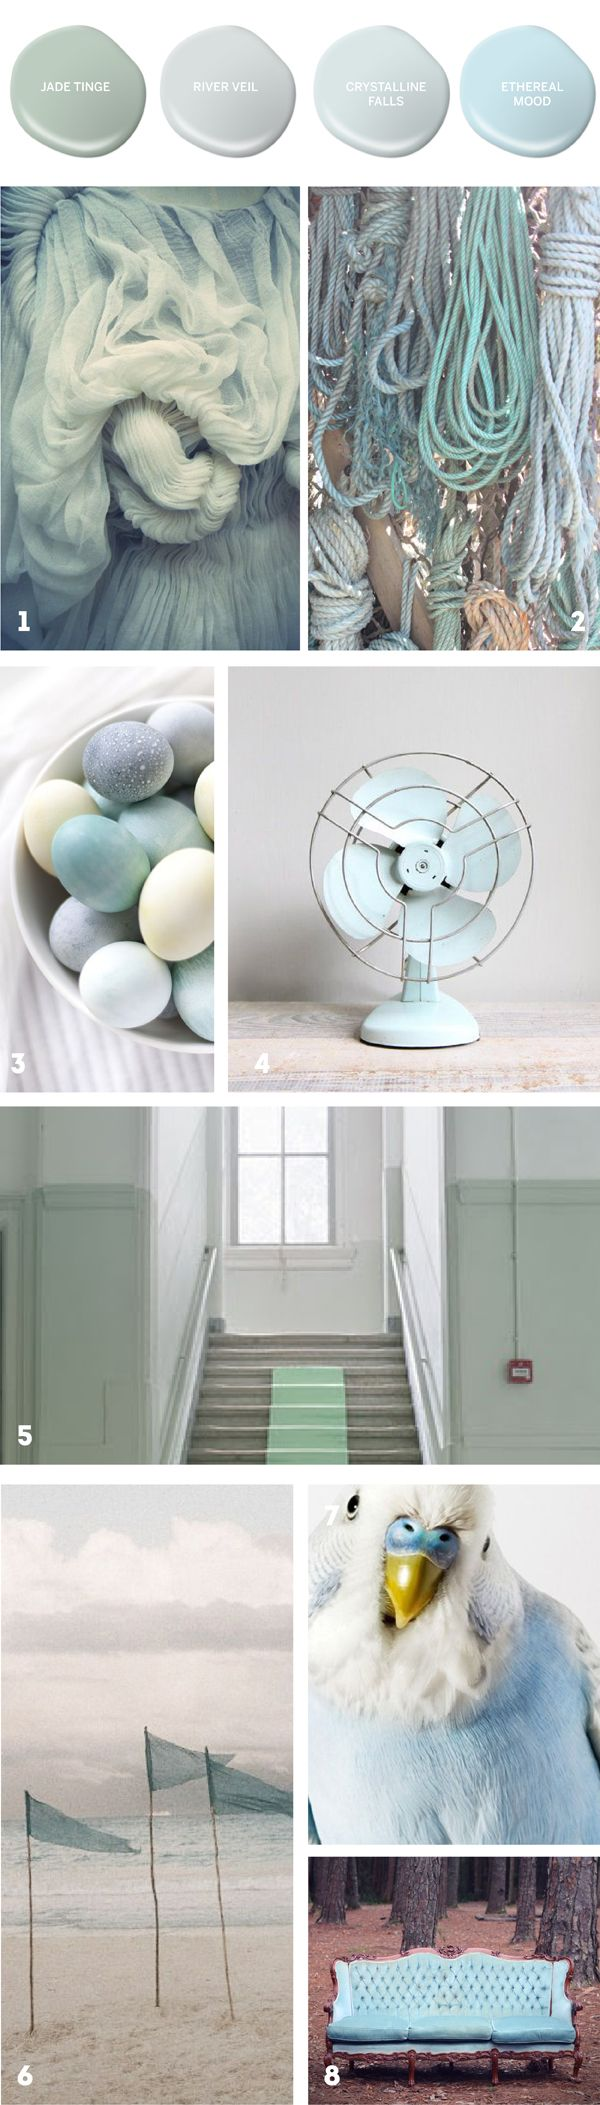 76 best Pastel Decor Inspiration images on Pinterest | Color ...